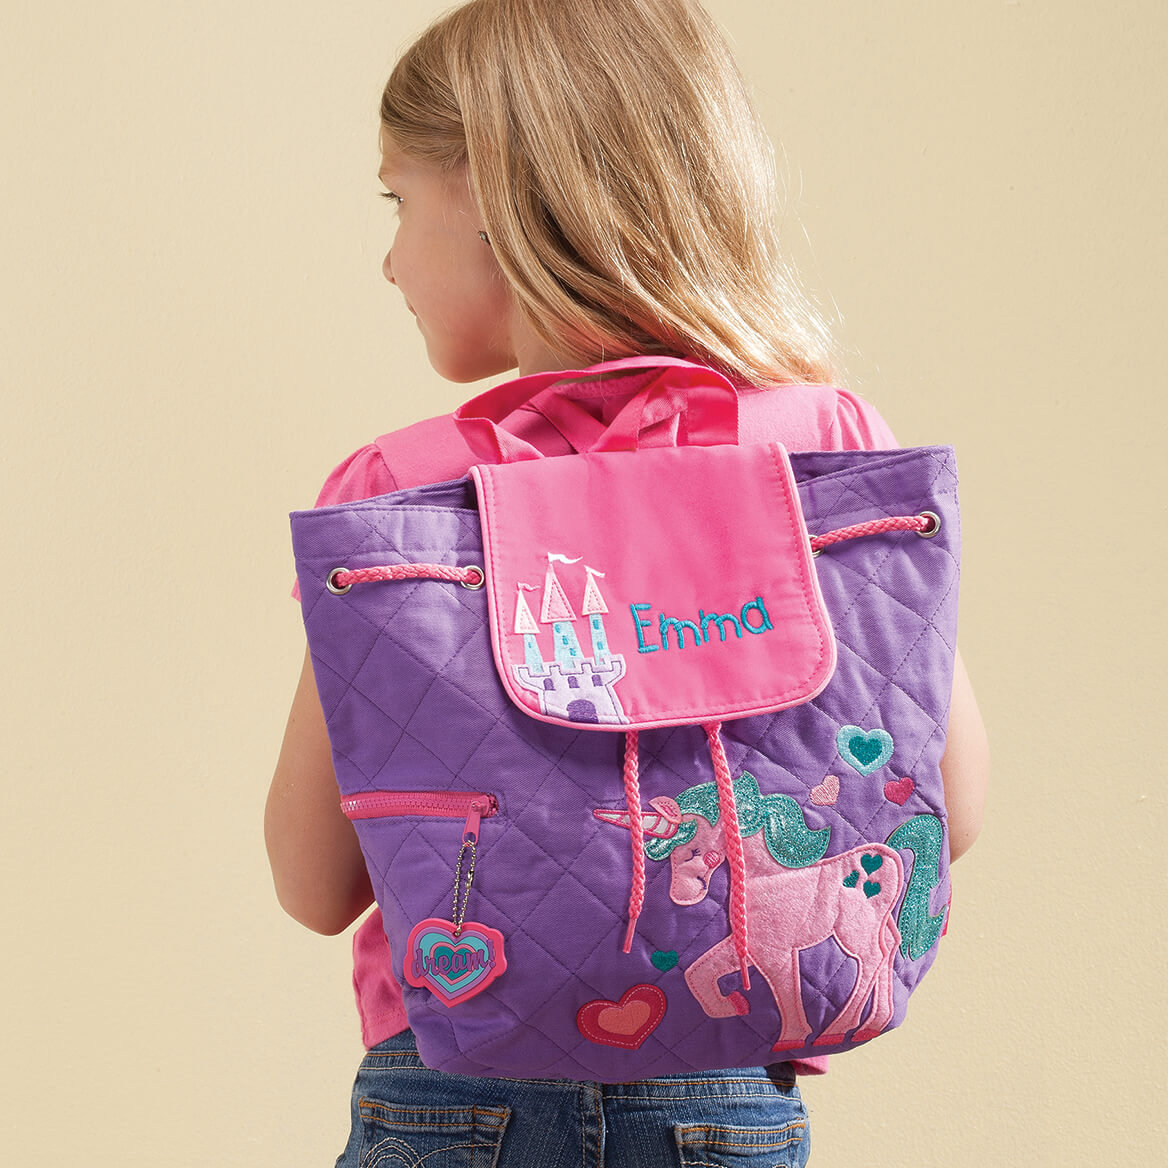 Personalized Girls Going To Grandmas Tote Childrens Miles Kimball Emma Blue Print Stephen Joseph Unicorn Quilted Backpack 365388